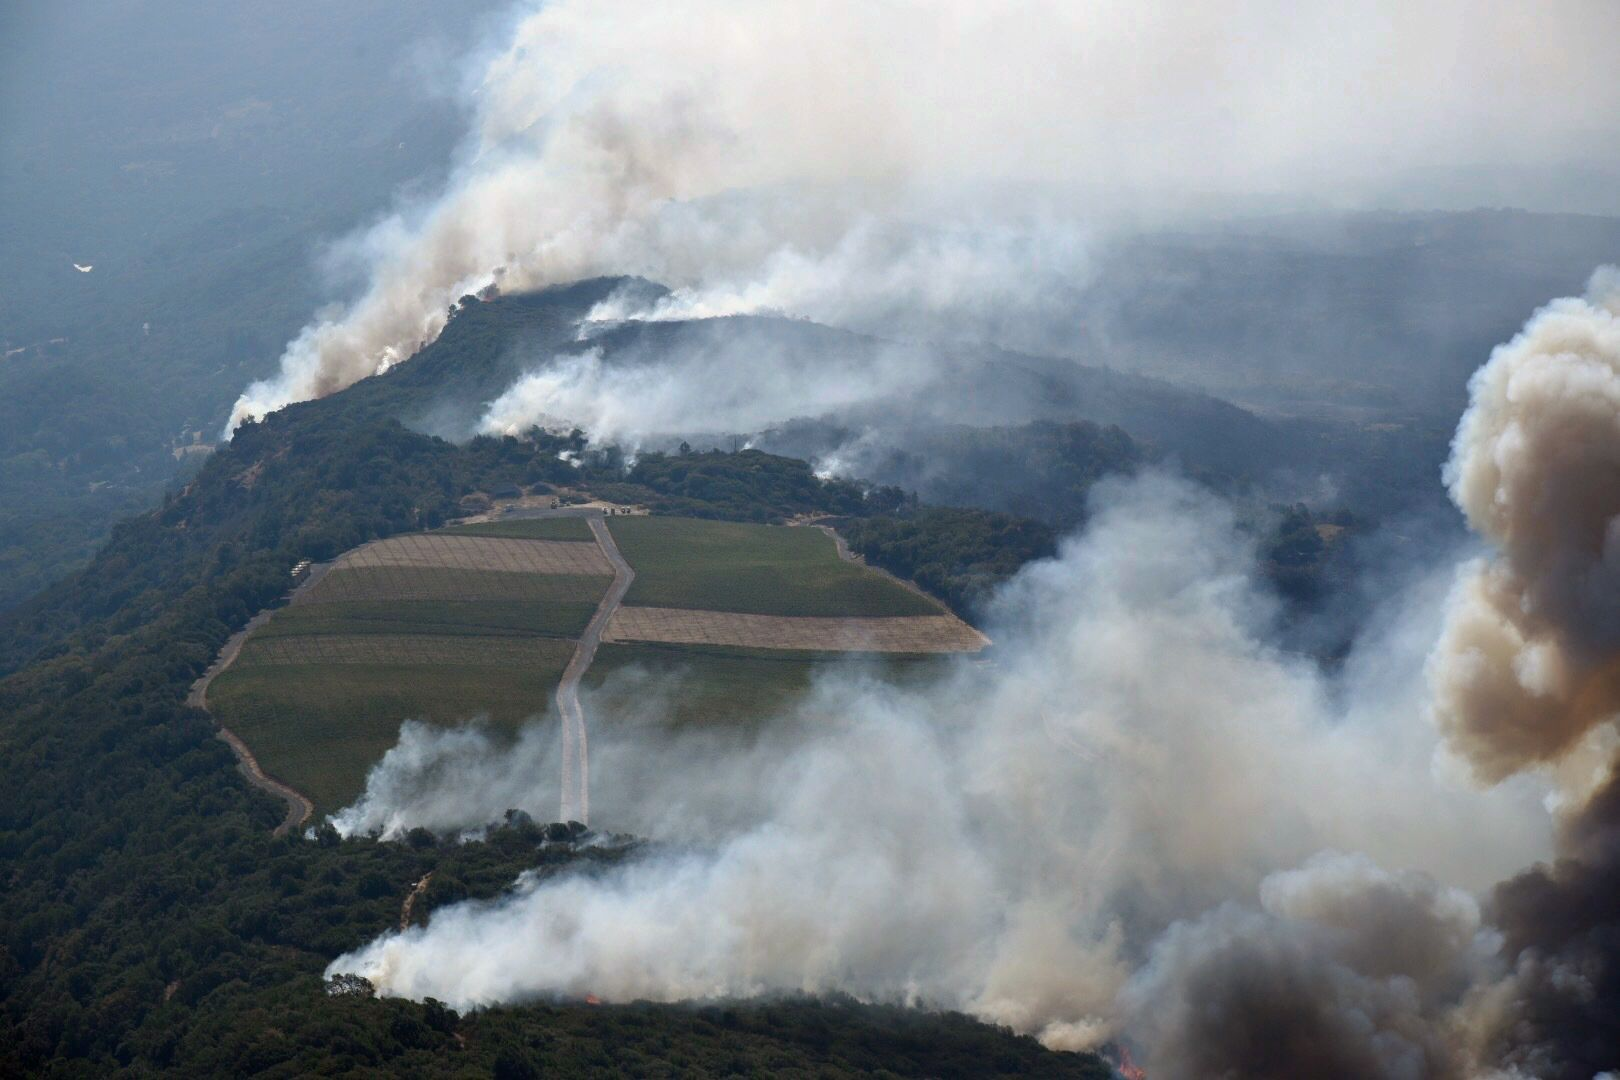 Smoke rises as a wildfire burns in the hills north east of Napa, Calif., Monday, Oct. 9, 2017. Wildfires whipped by powerful winds swept through Northern California sending residents on a headlong flight to safety through smoke and flames as homes burned.